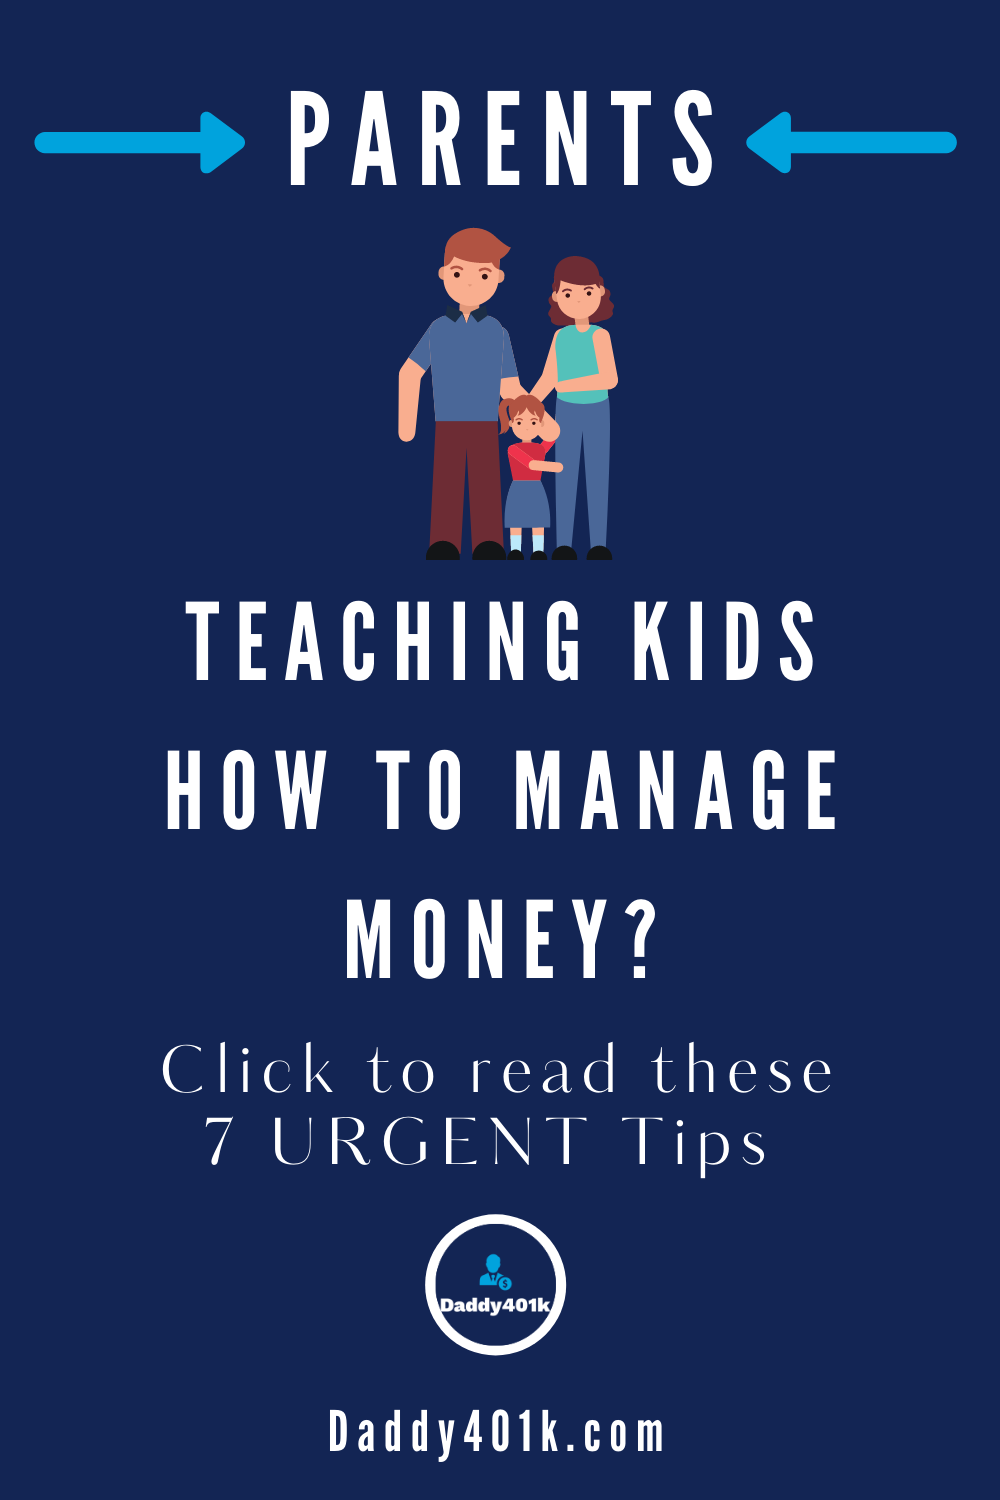 Image of Pinterest pin about money management for kids